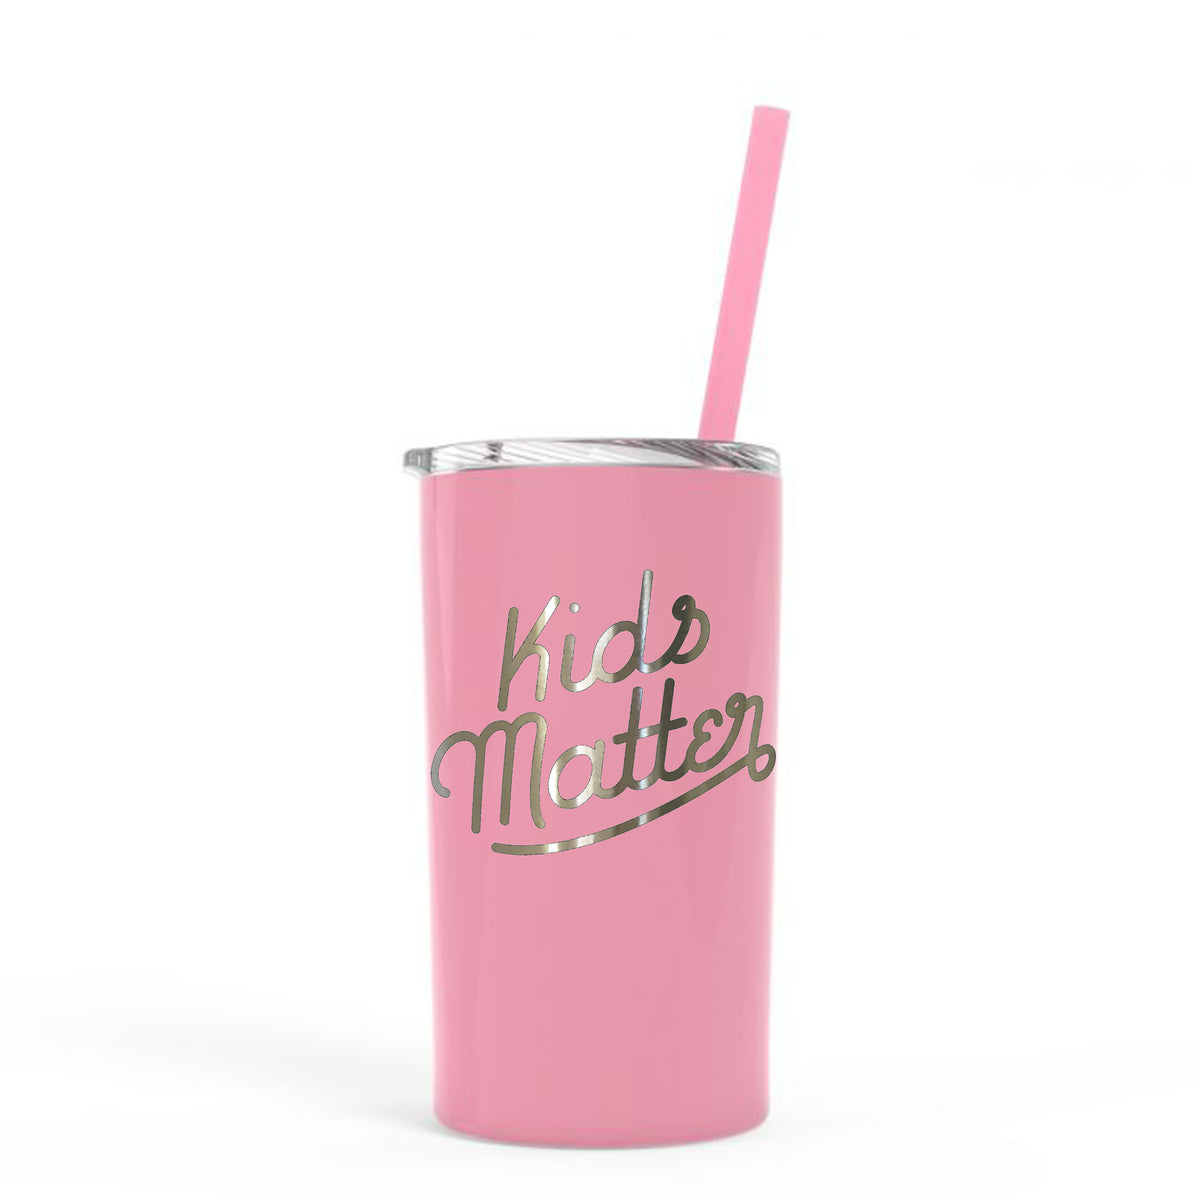 Kids Matter - Super Slim 12 Ounce Stainless Steel Insulated Tumbler With Straw